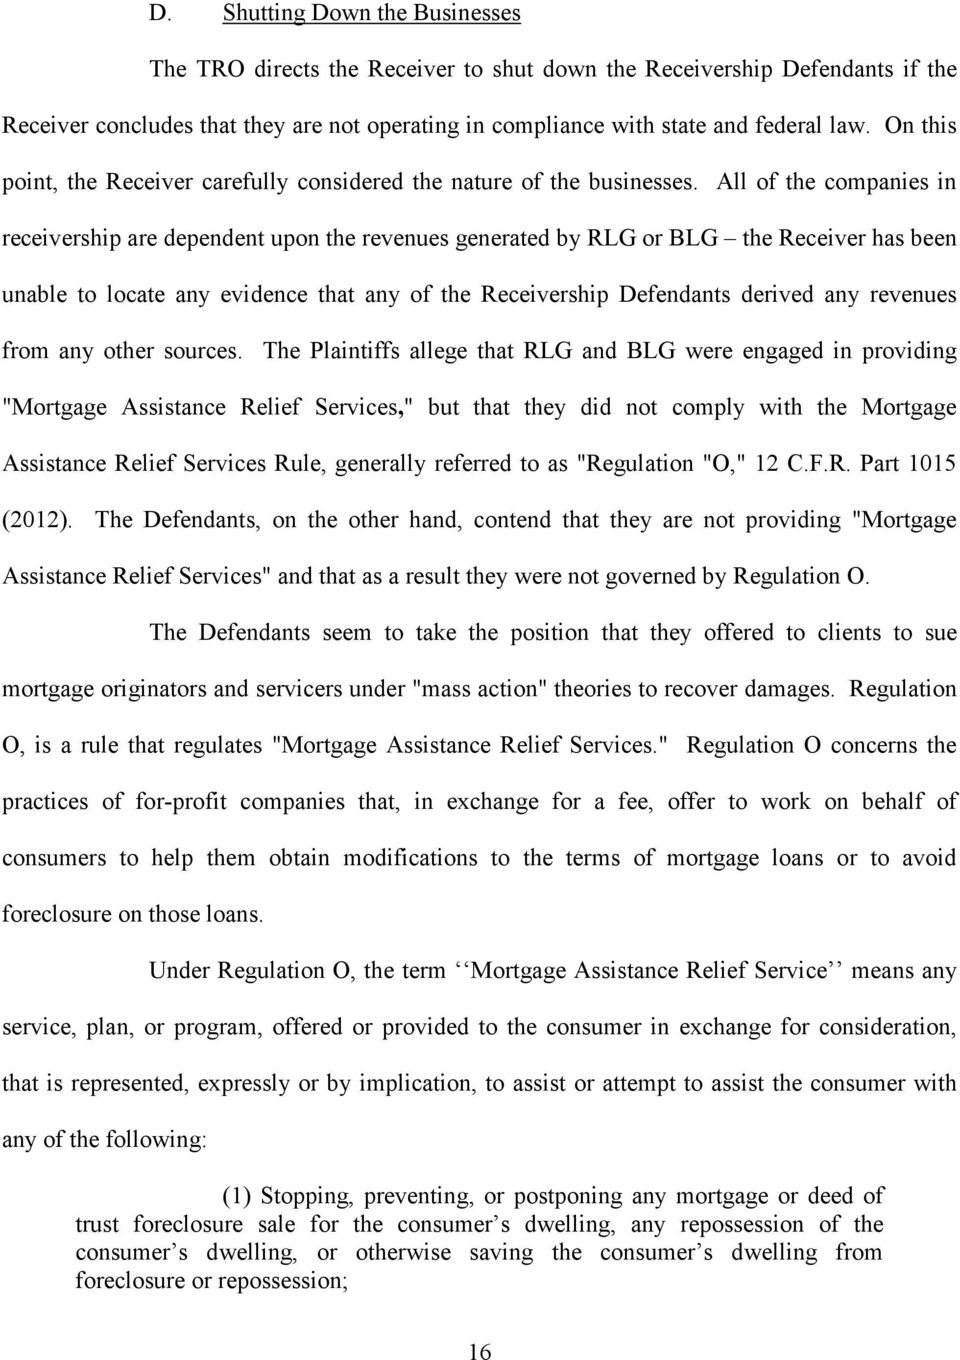 All of the companies in receivership are dependent upon the revenues generated by RLG or BLG the Receiver has been unable to locate any evidence that any of the Receivership Defendants derived any